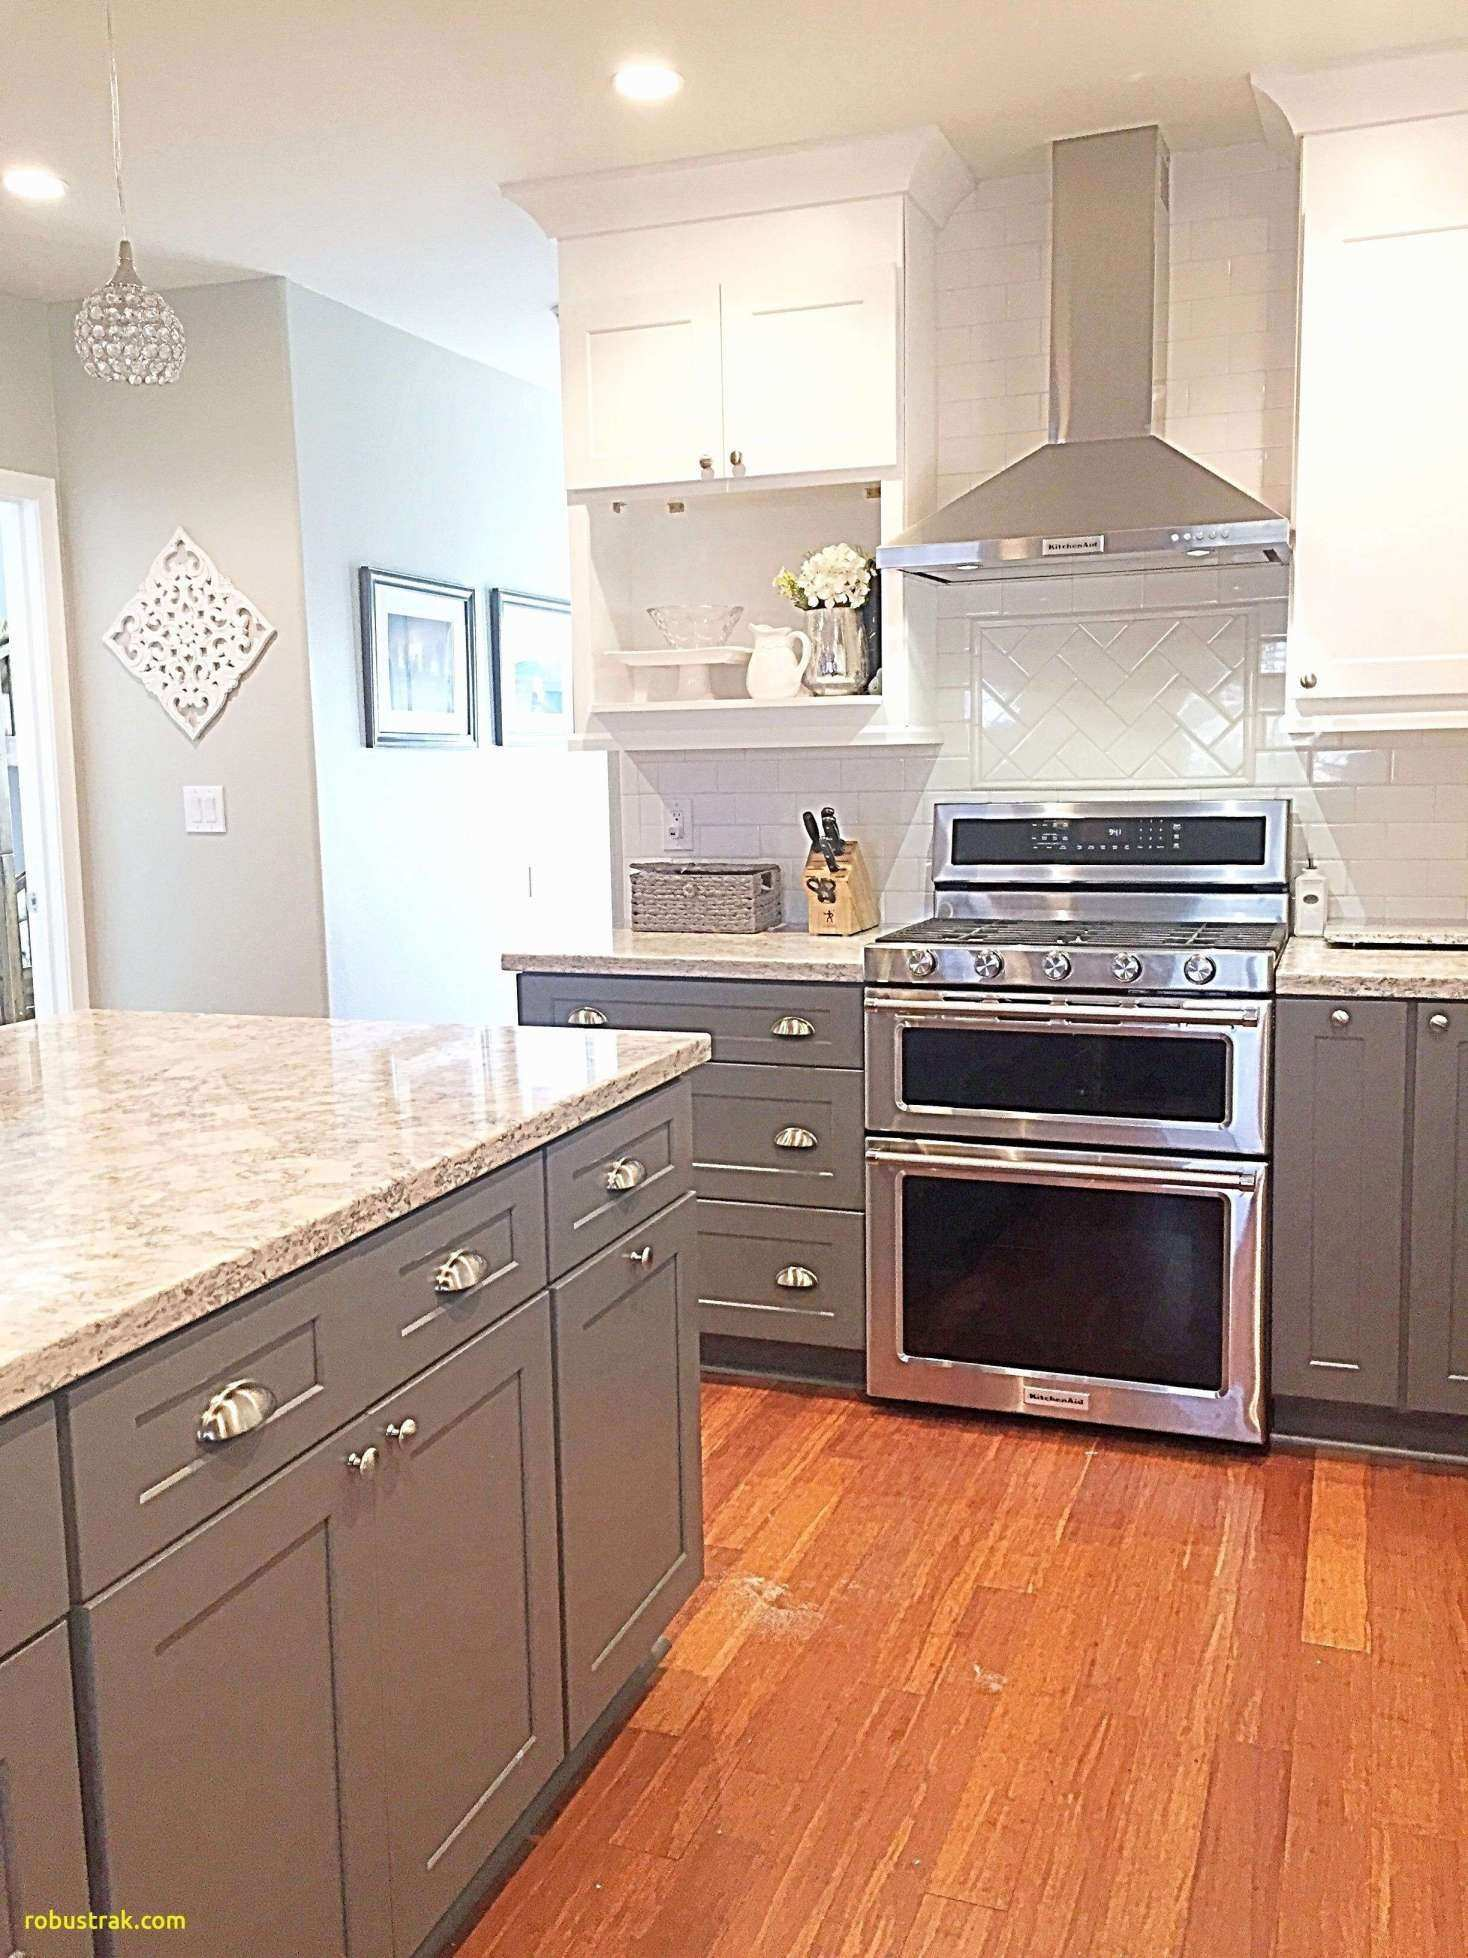 20 Lovely Kitchen Cabinet Cost for Best Paint Prices – Kitchen Ideas